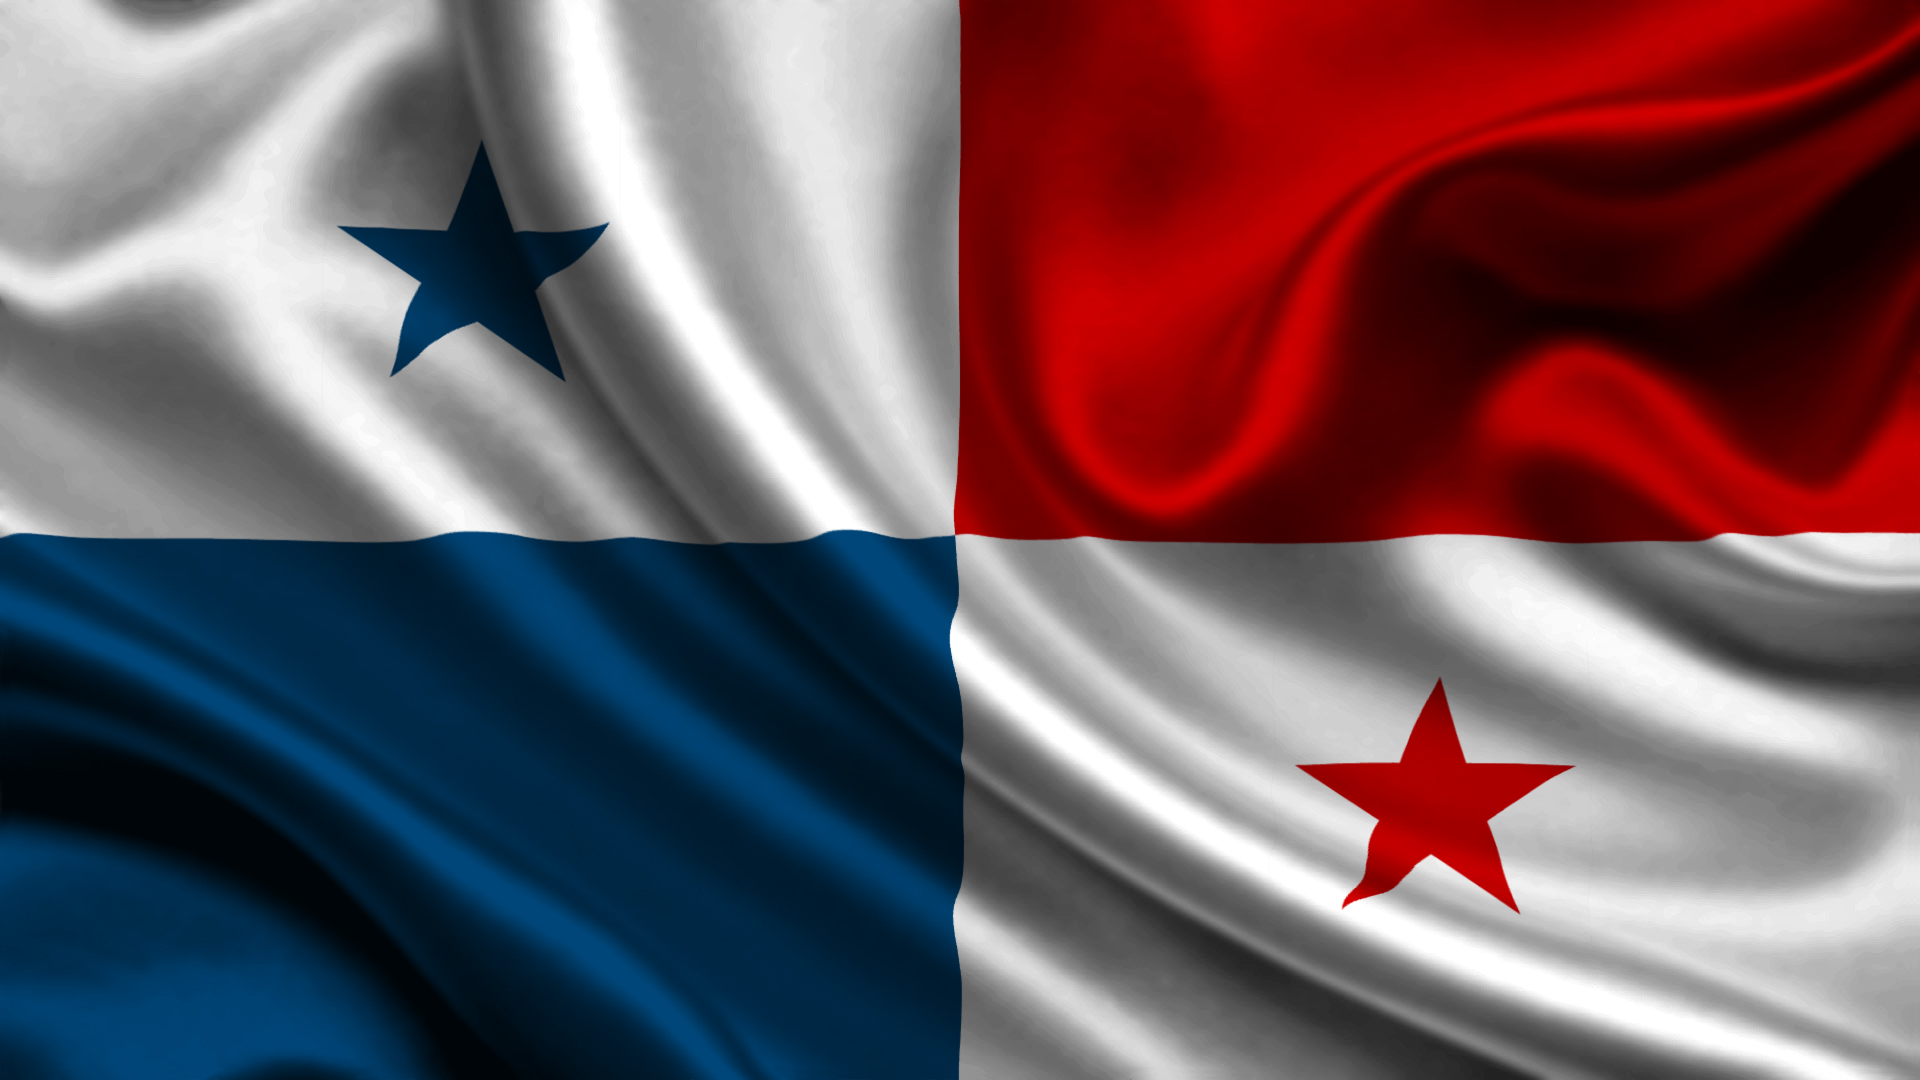 Photo Panama Flag 1920x1080 1920x1080